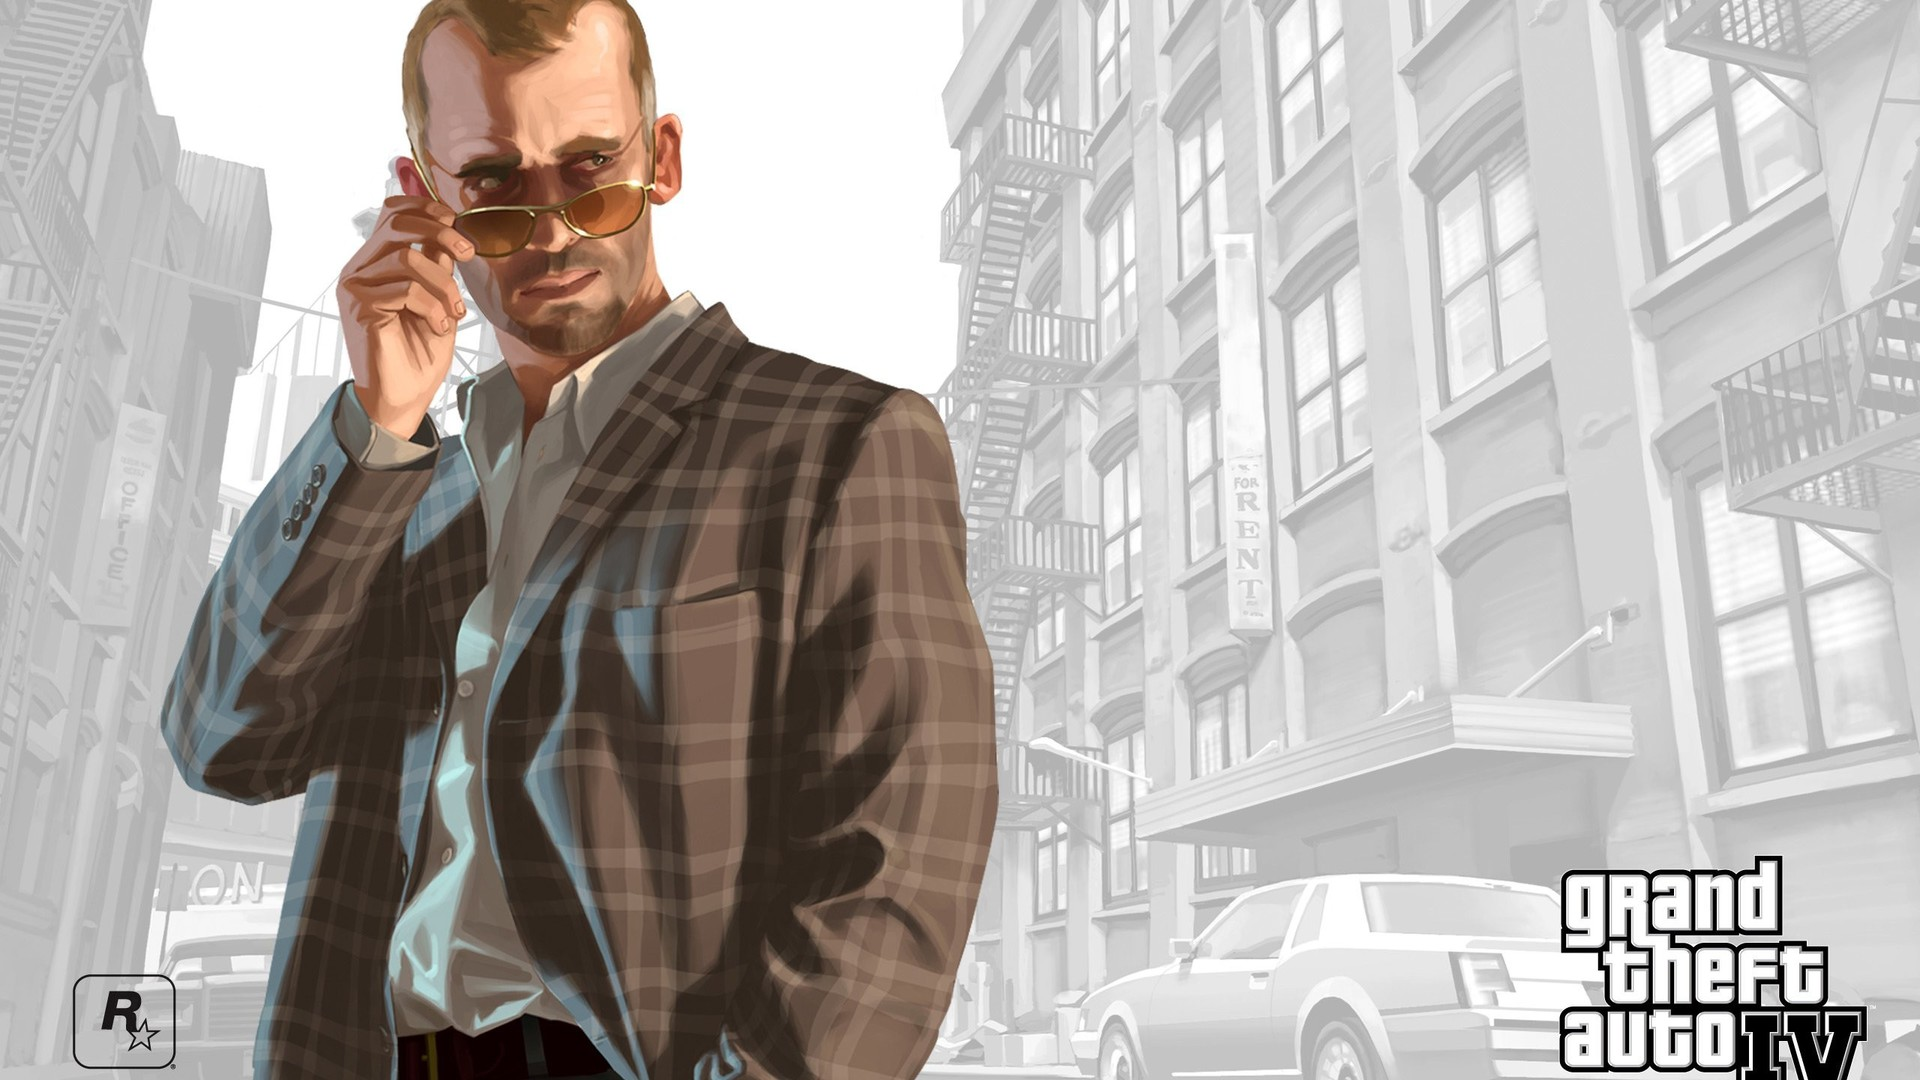 Video games grand theft auto gta iv wallpaper ...